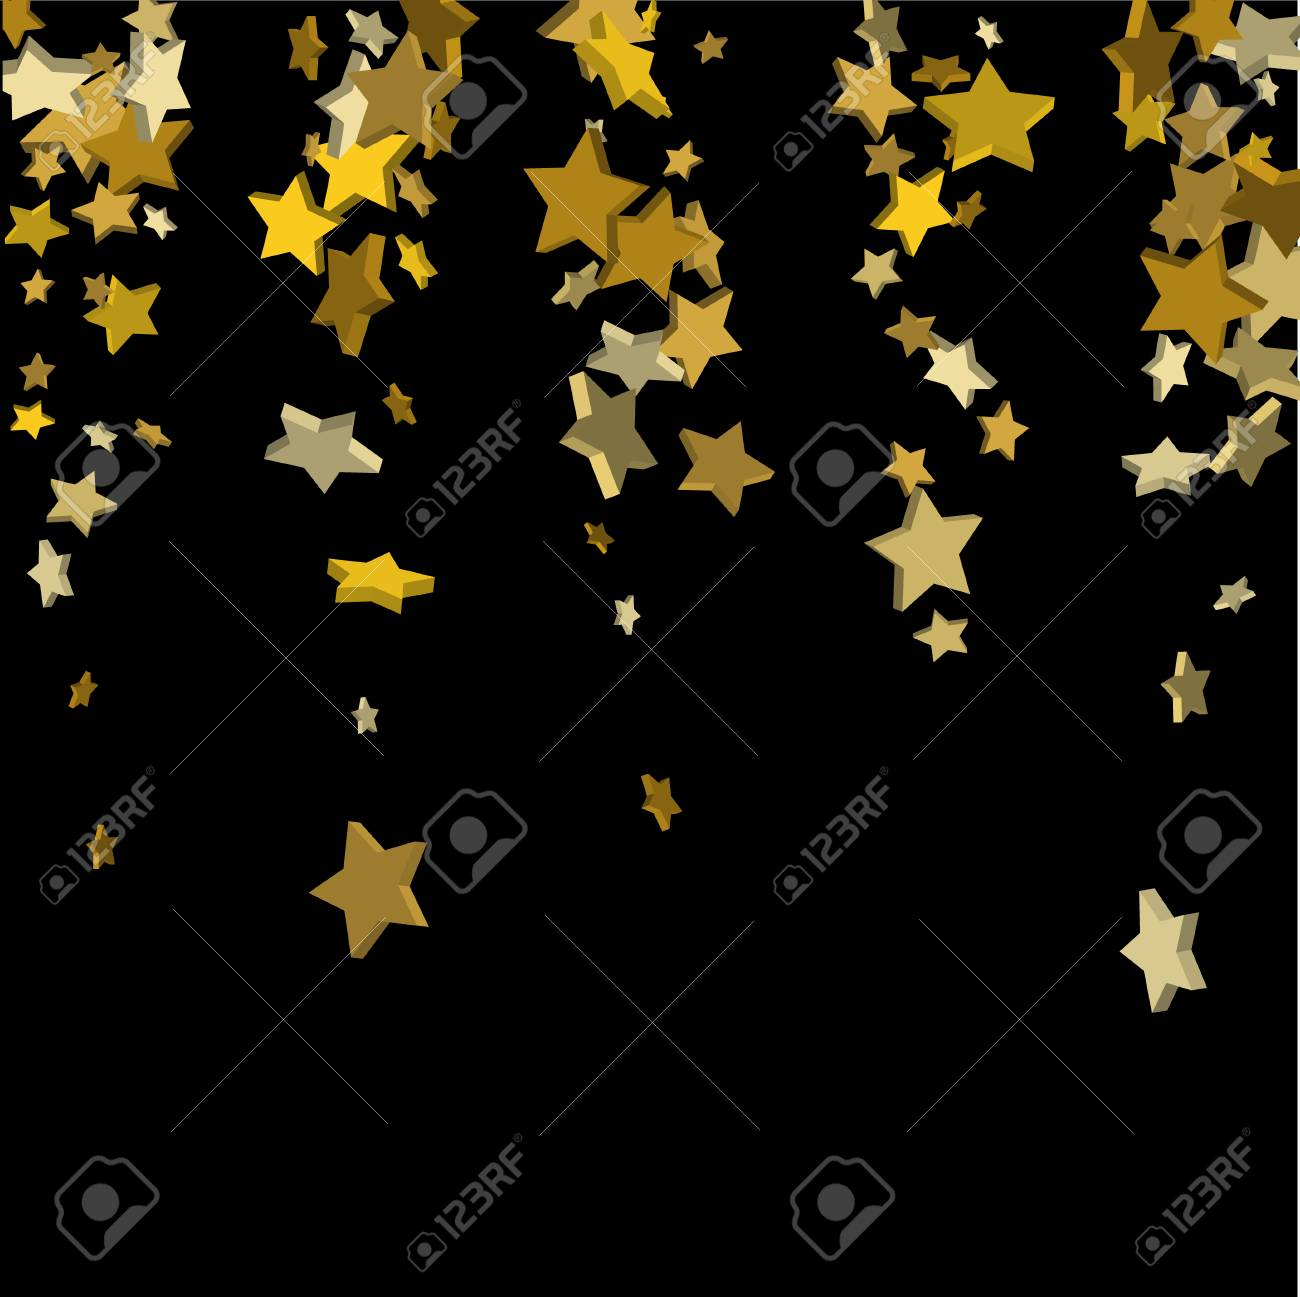 vector black template with gold stars illustration of flying shiny